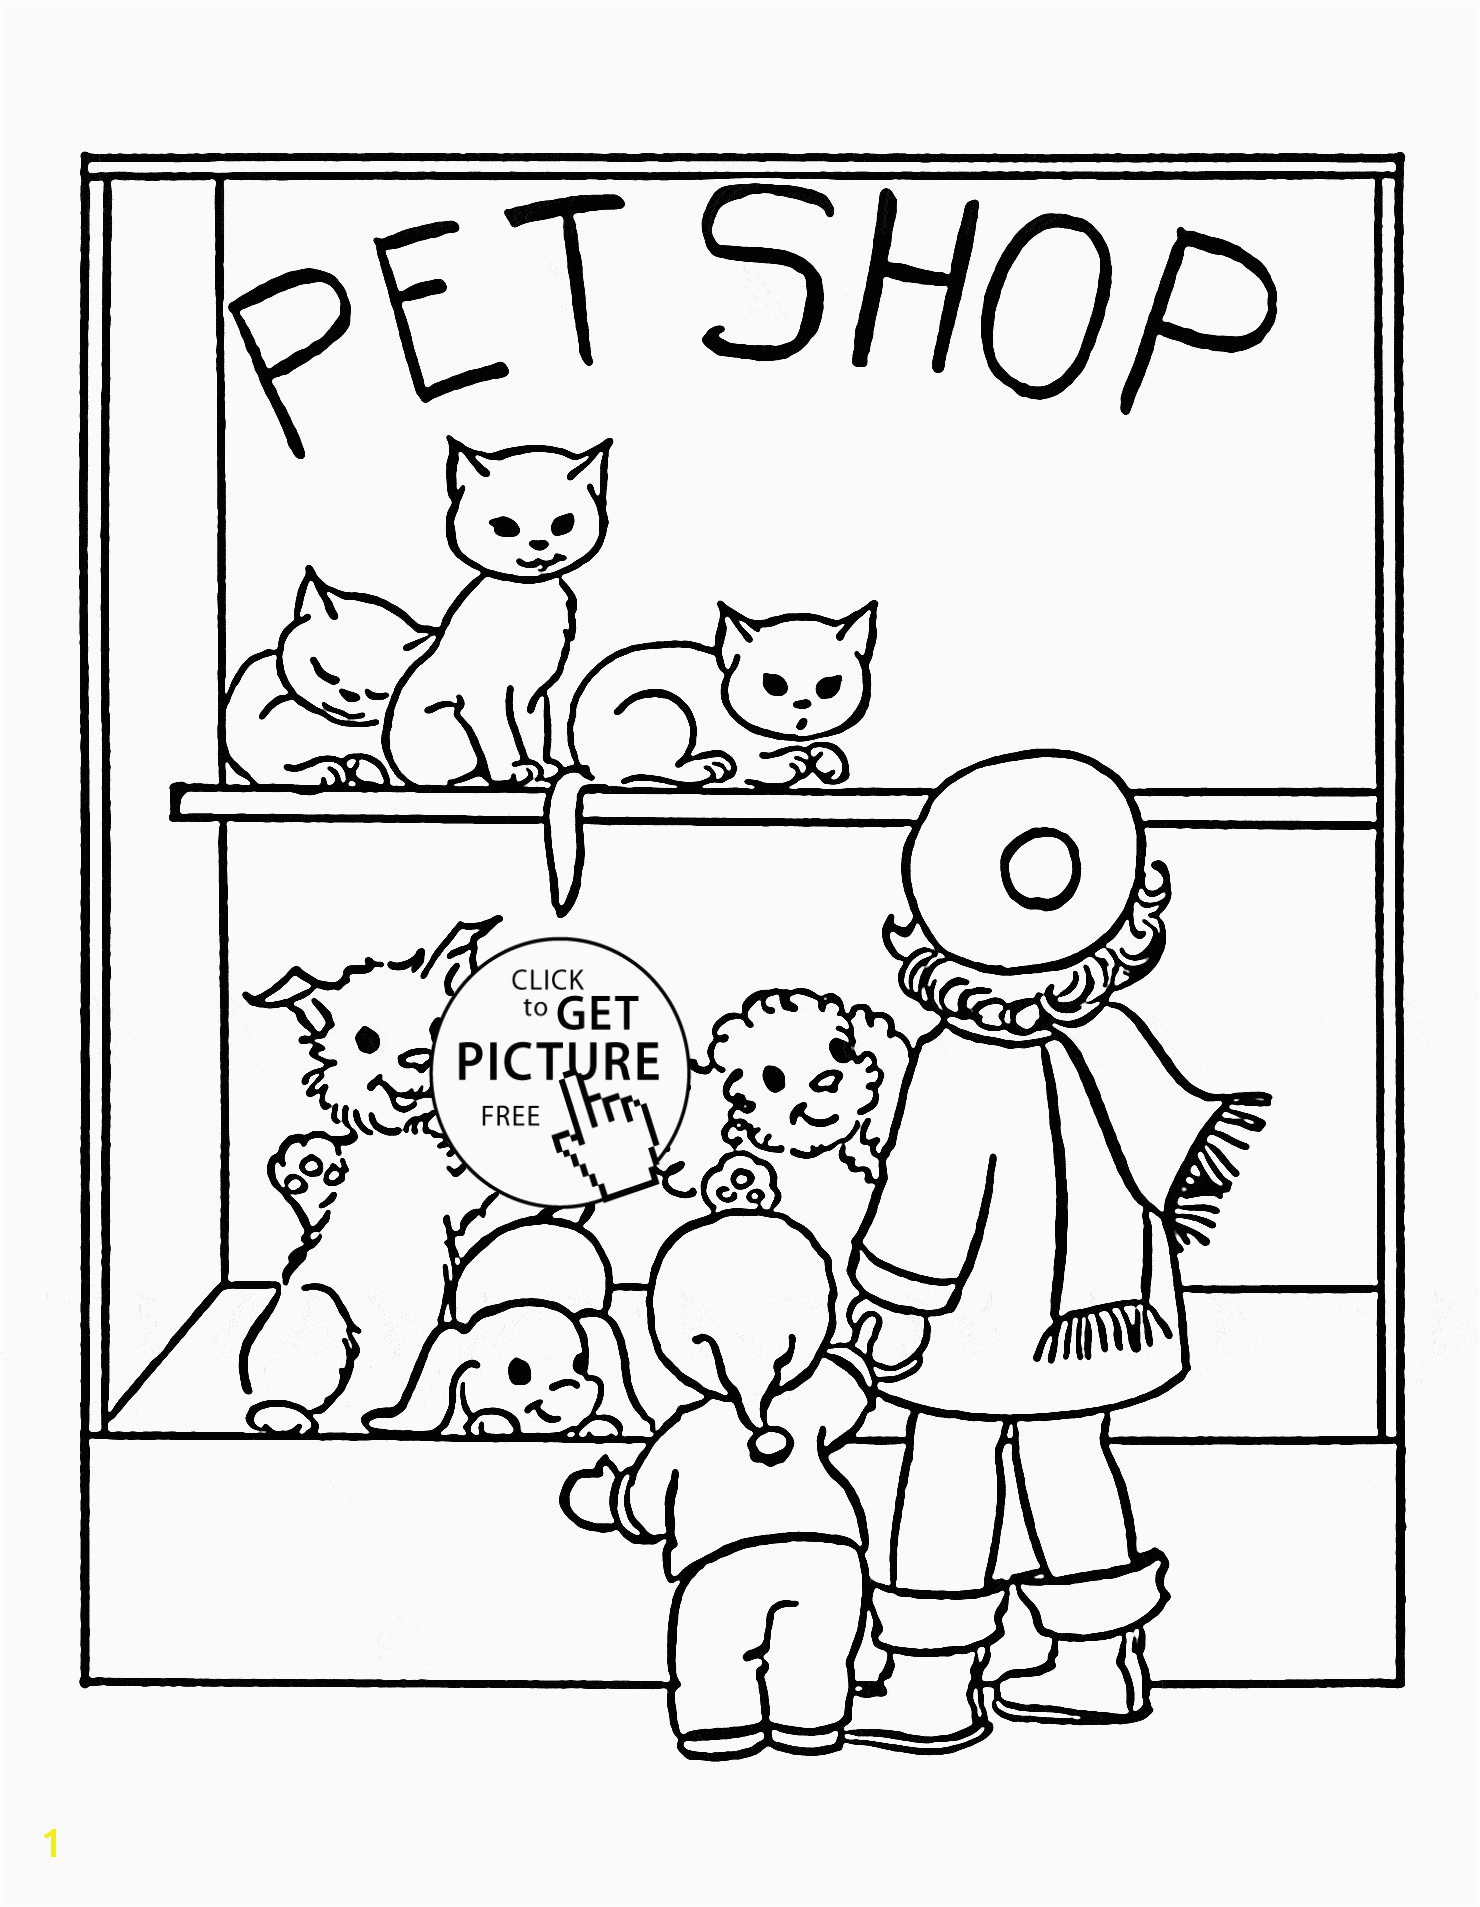 Wwe Championship Belt Coloring Pages Hello Kitty Printable Coloring Page Fresh Cool Od Dog Coloring Pages